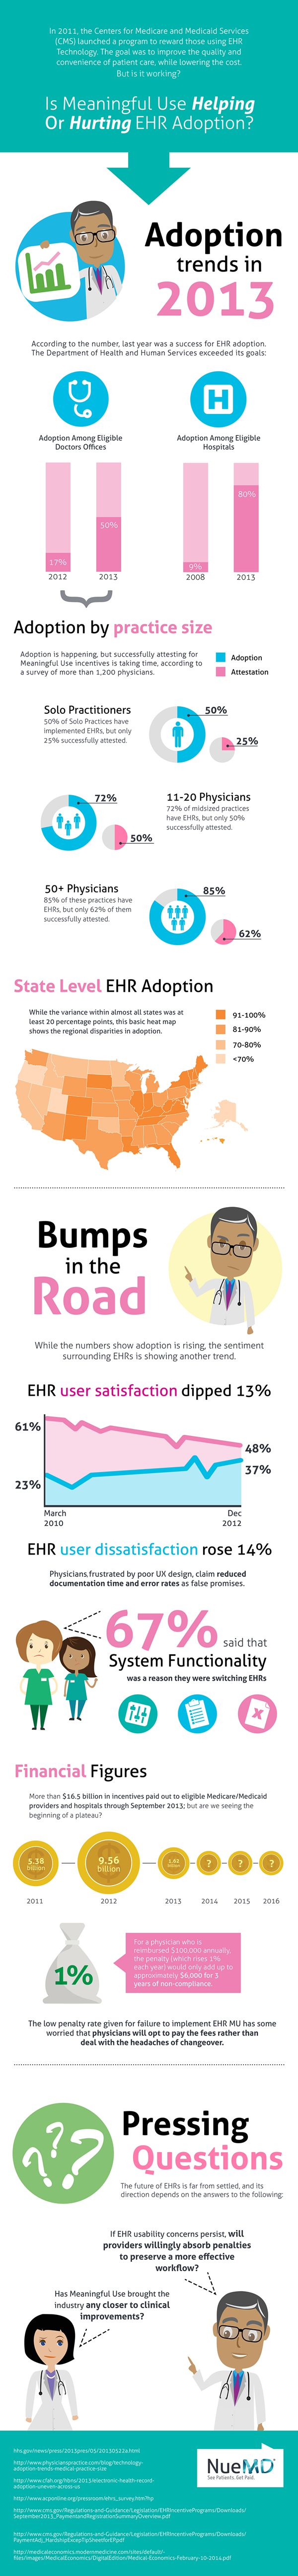 best electronic medical records for mental health images on  is meaningful use really helping or hurting ehr adoption infographic created by nuemd identifies adoption trends and determine potential obstacles to mu